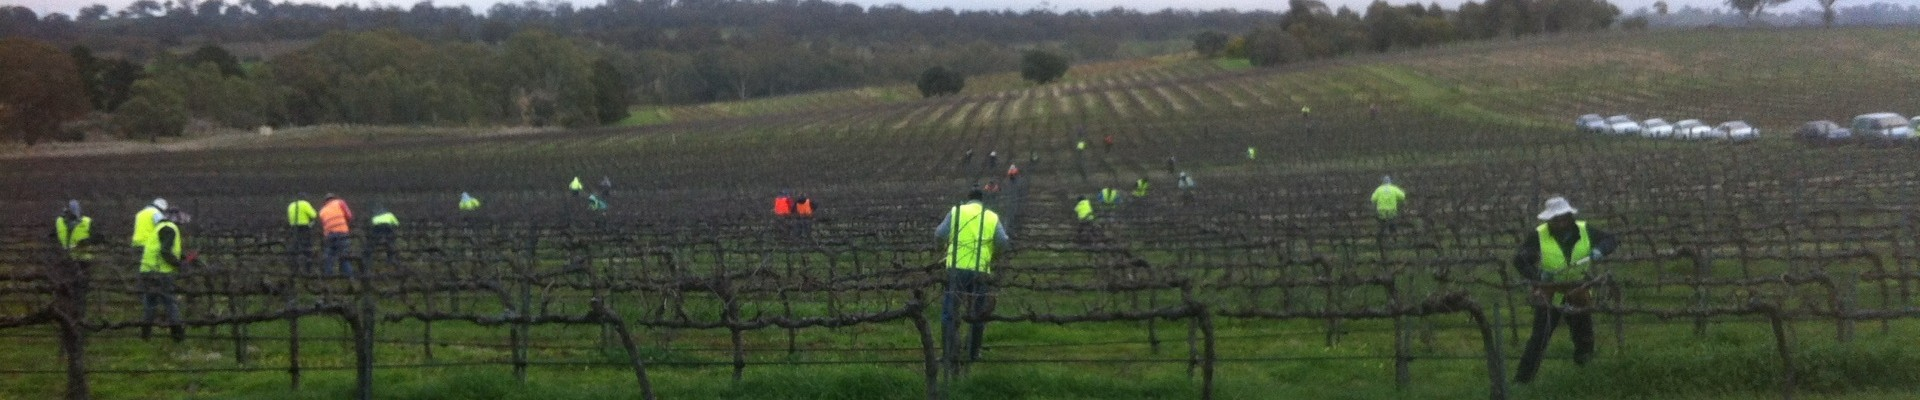 Winter pruning with Ackland Vineyard Services